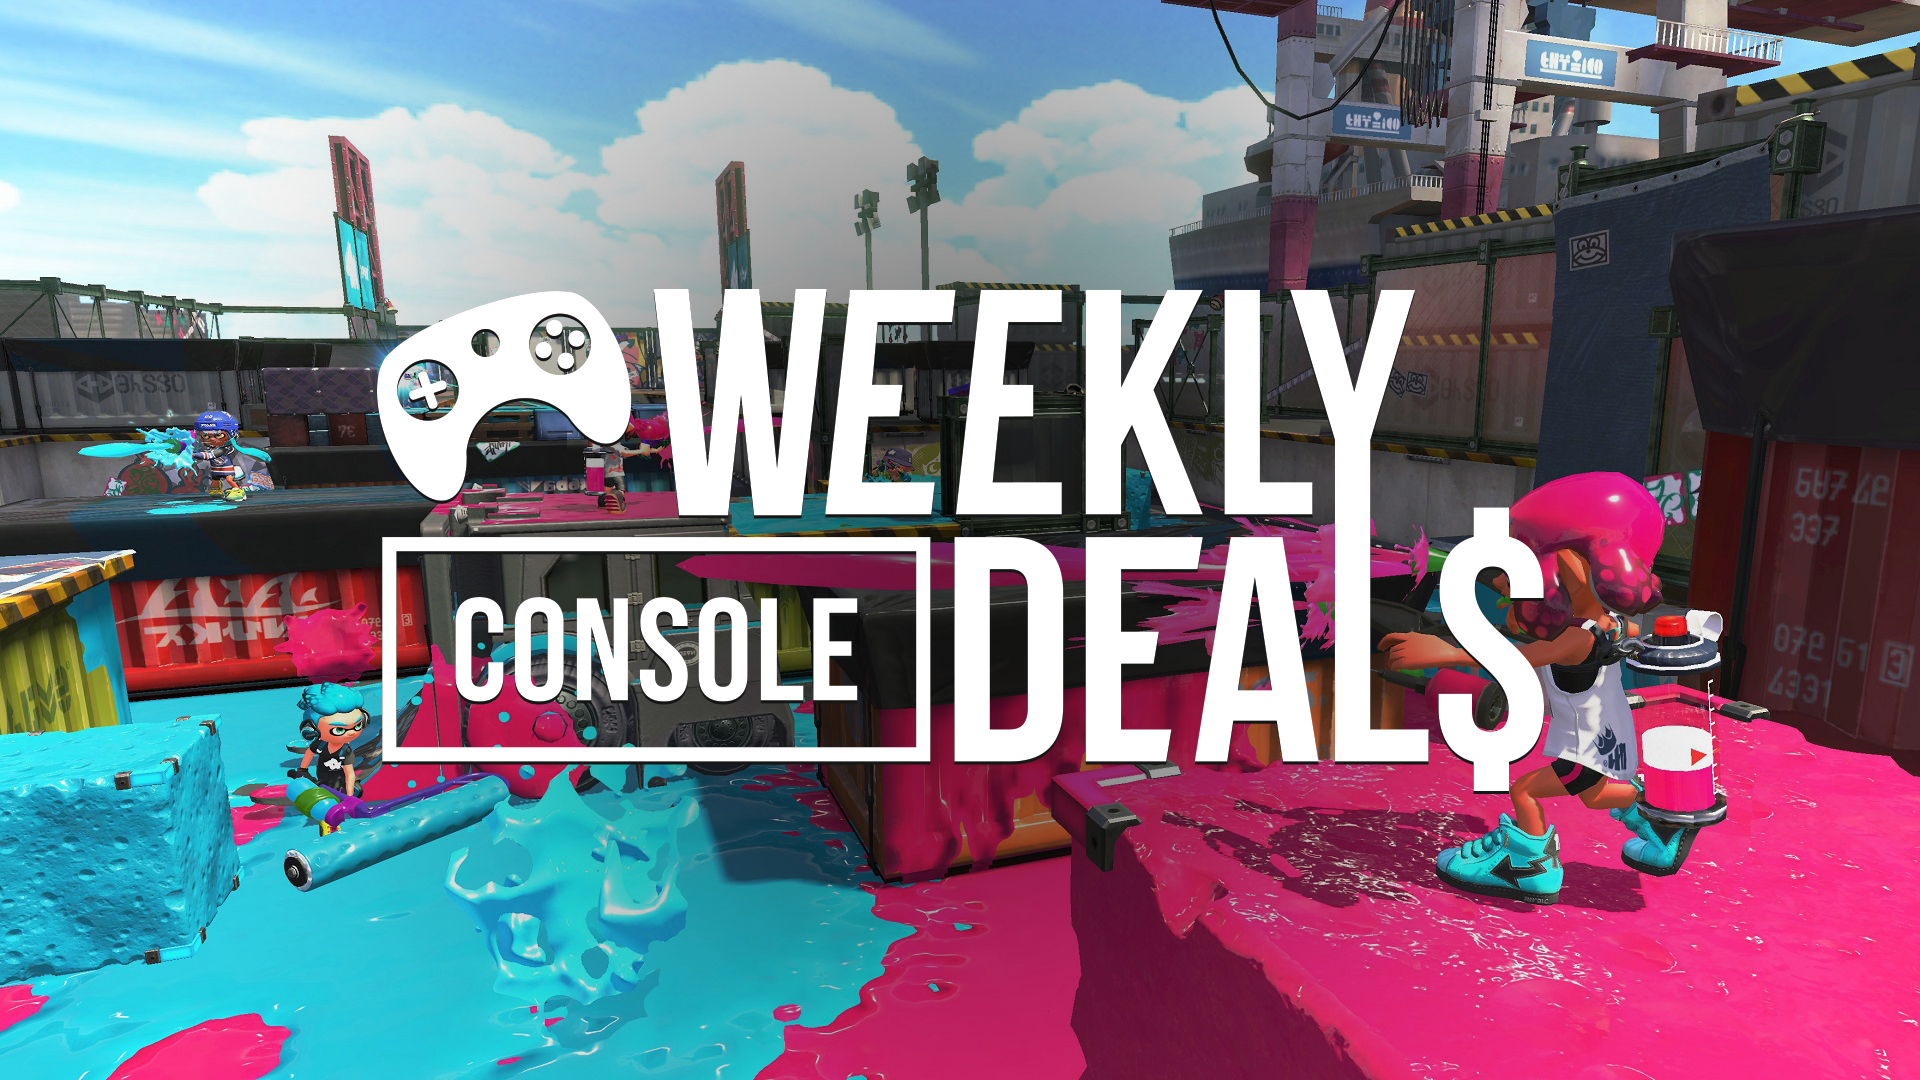 Weekend Console Download Deals For May 1 Splatoon 2 Golden Week And Star Wars Shacknews